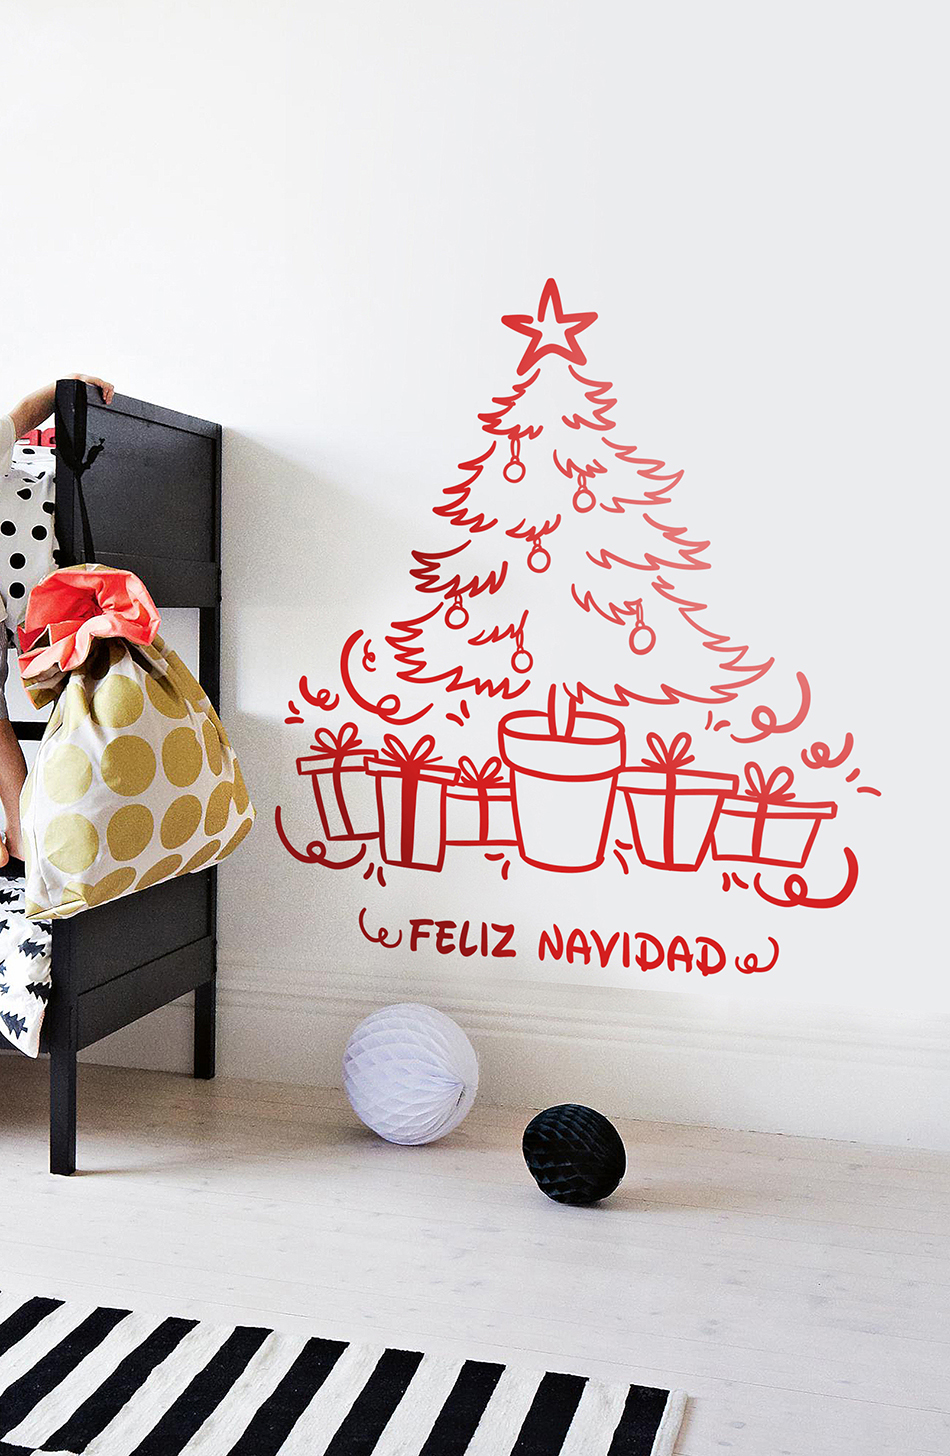 Decora tu casa con vinilos decorativos navide os - Decoracion vinilos salon ...